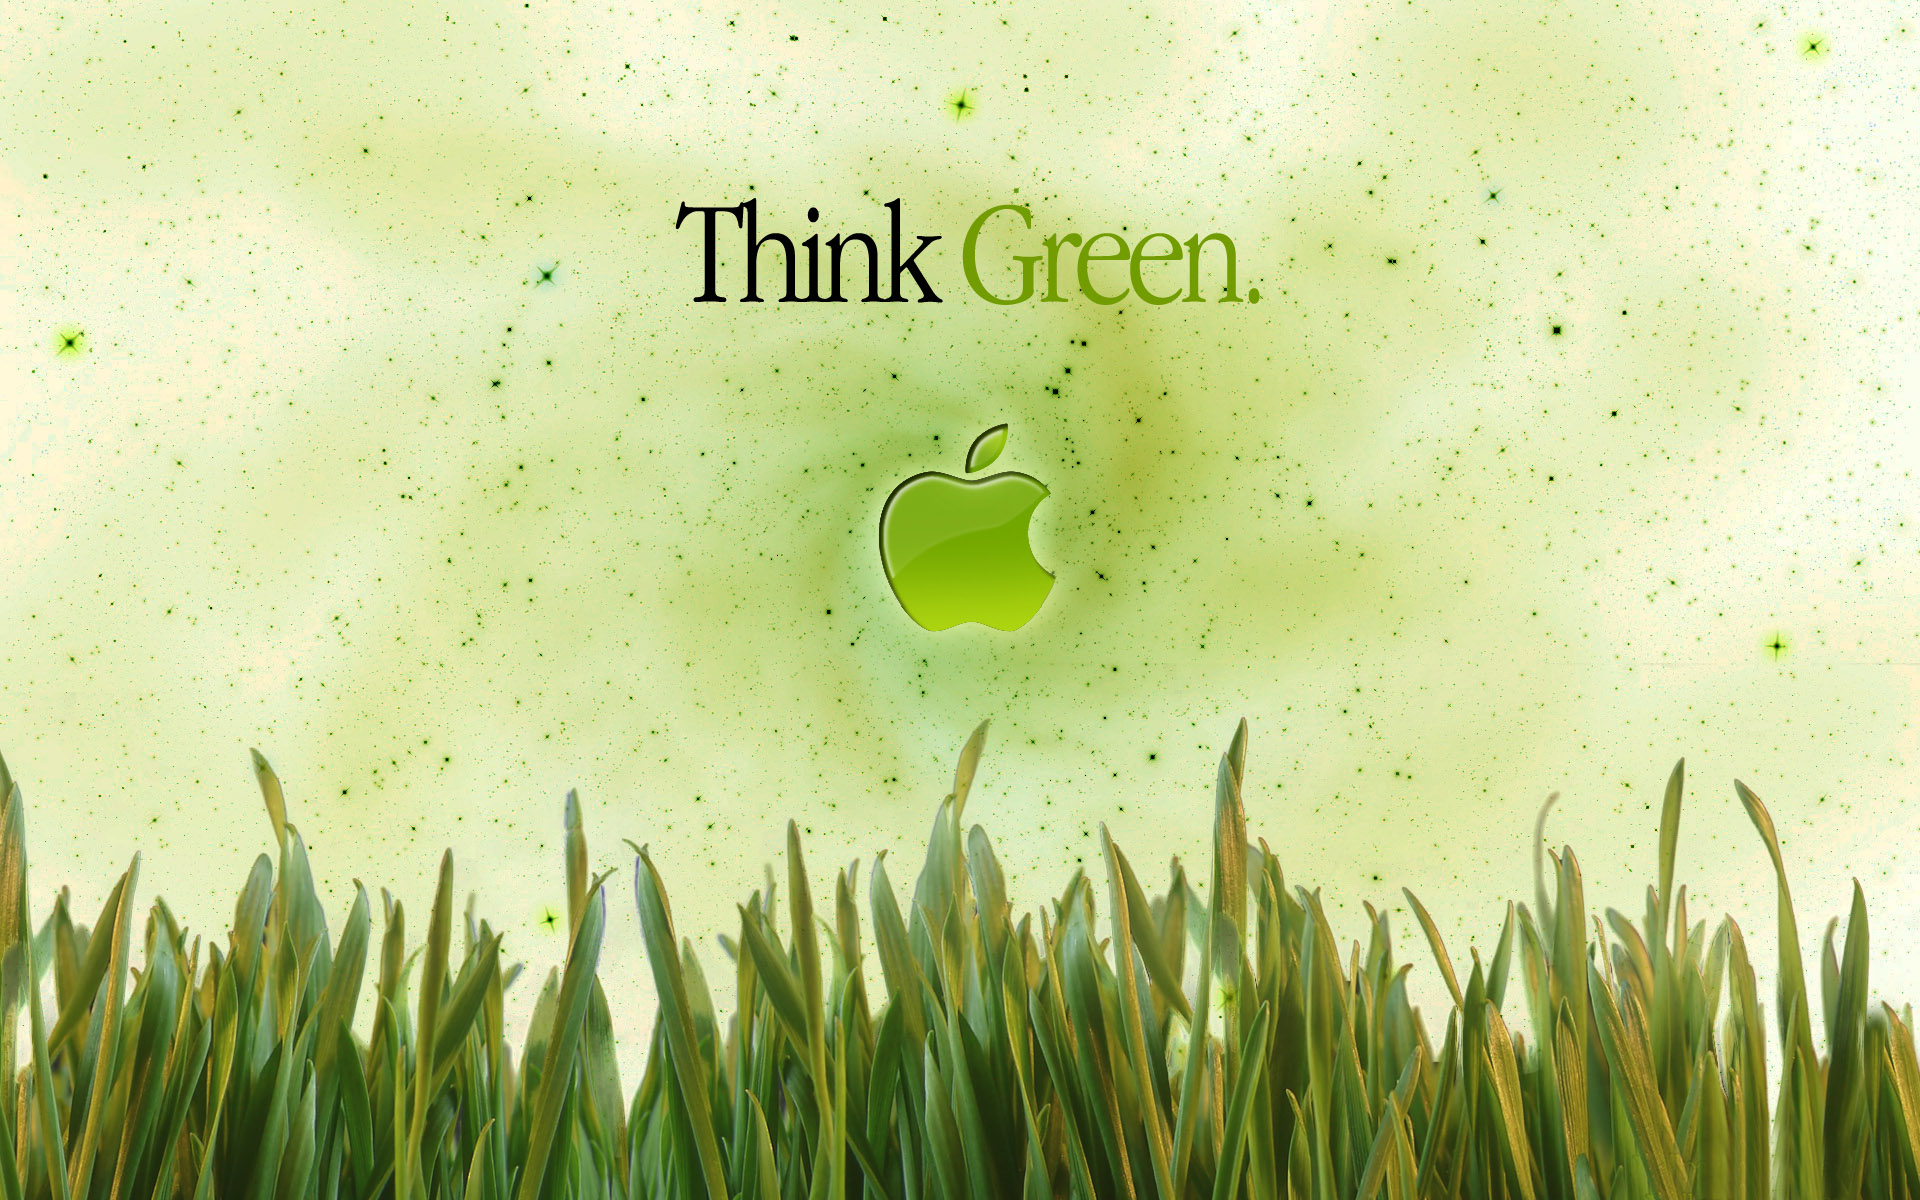 HD Apple wallpaper 17623